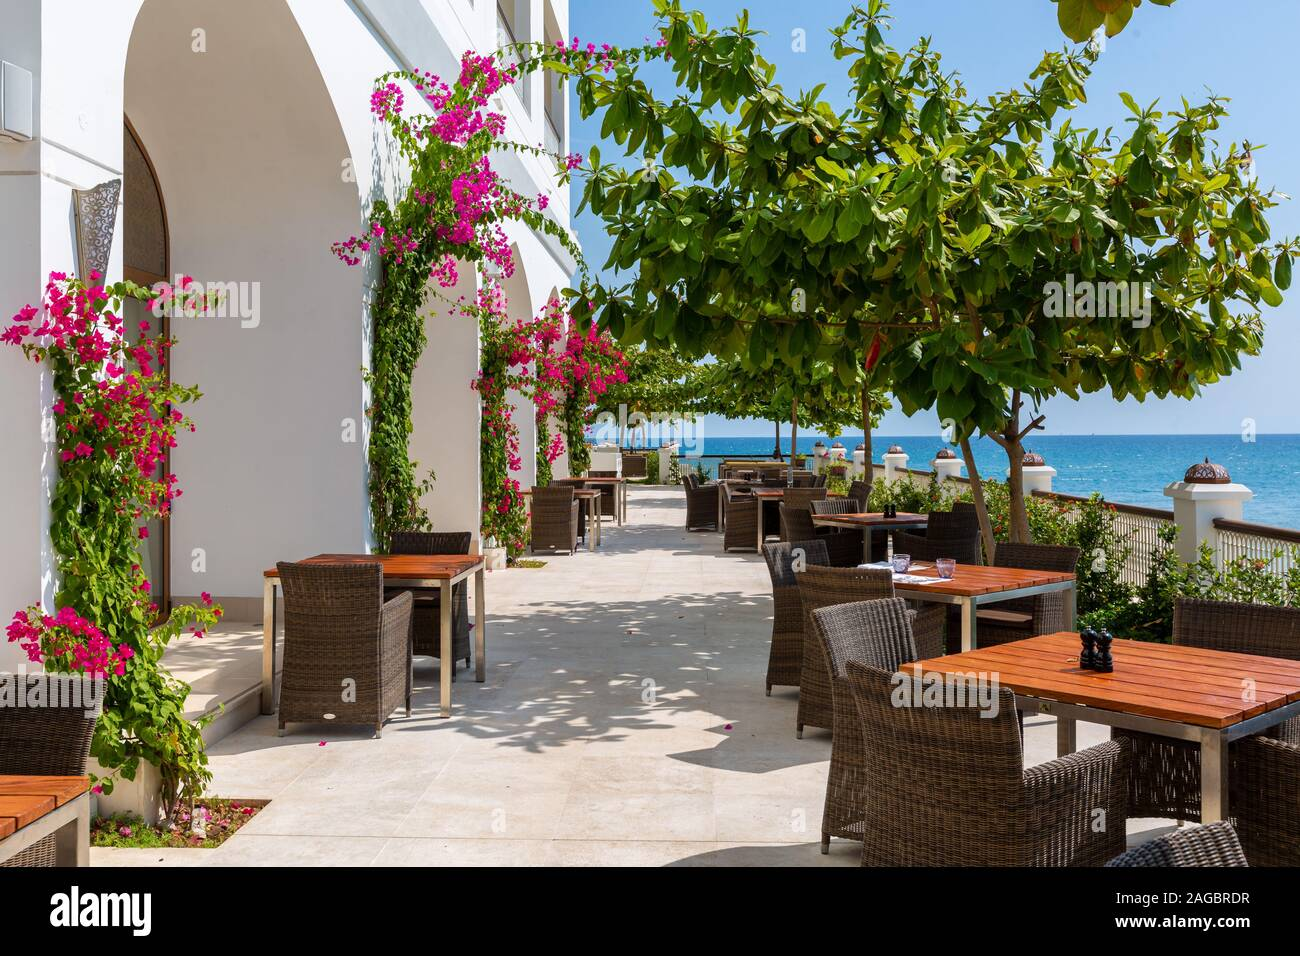 An Outdoor Restaurant With Pink Flower Bushes On The Walls Surrounded By Trees And Sea In Zanzibar Stock Photo Alamy